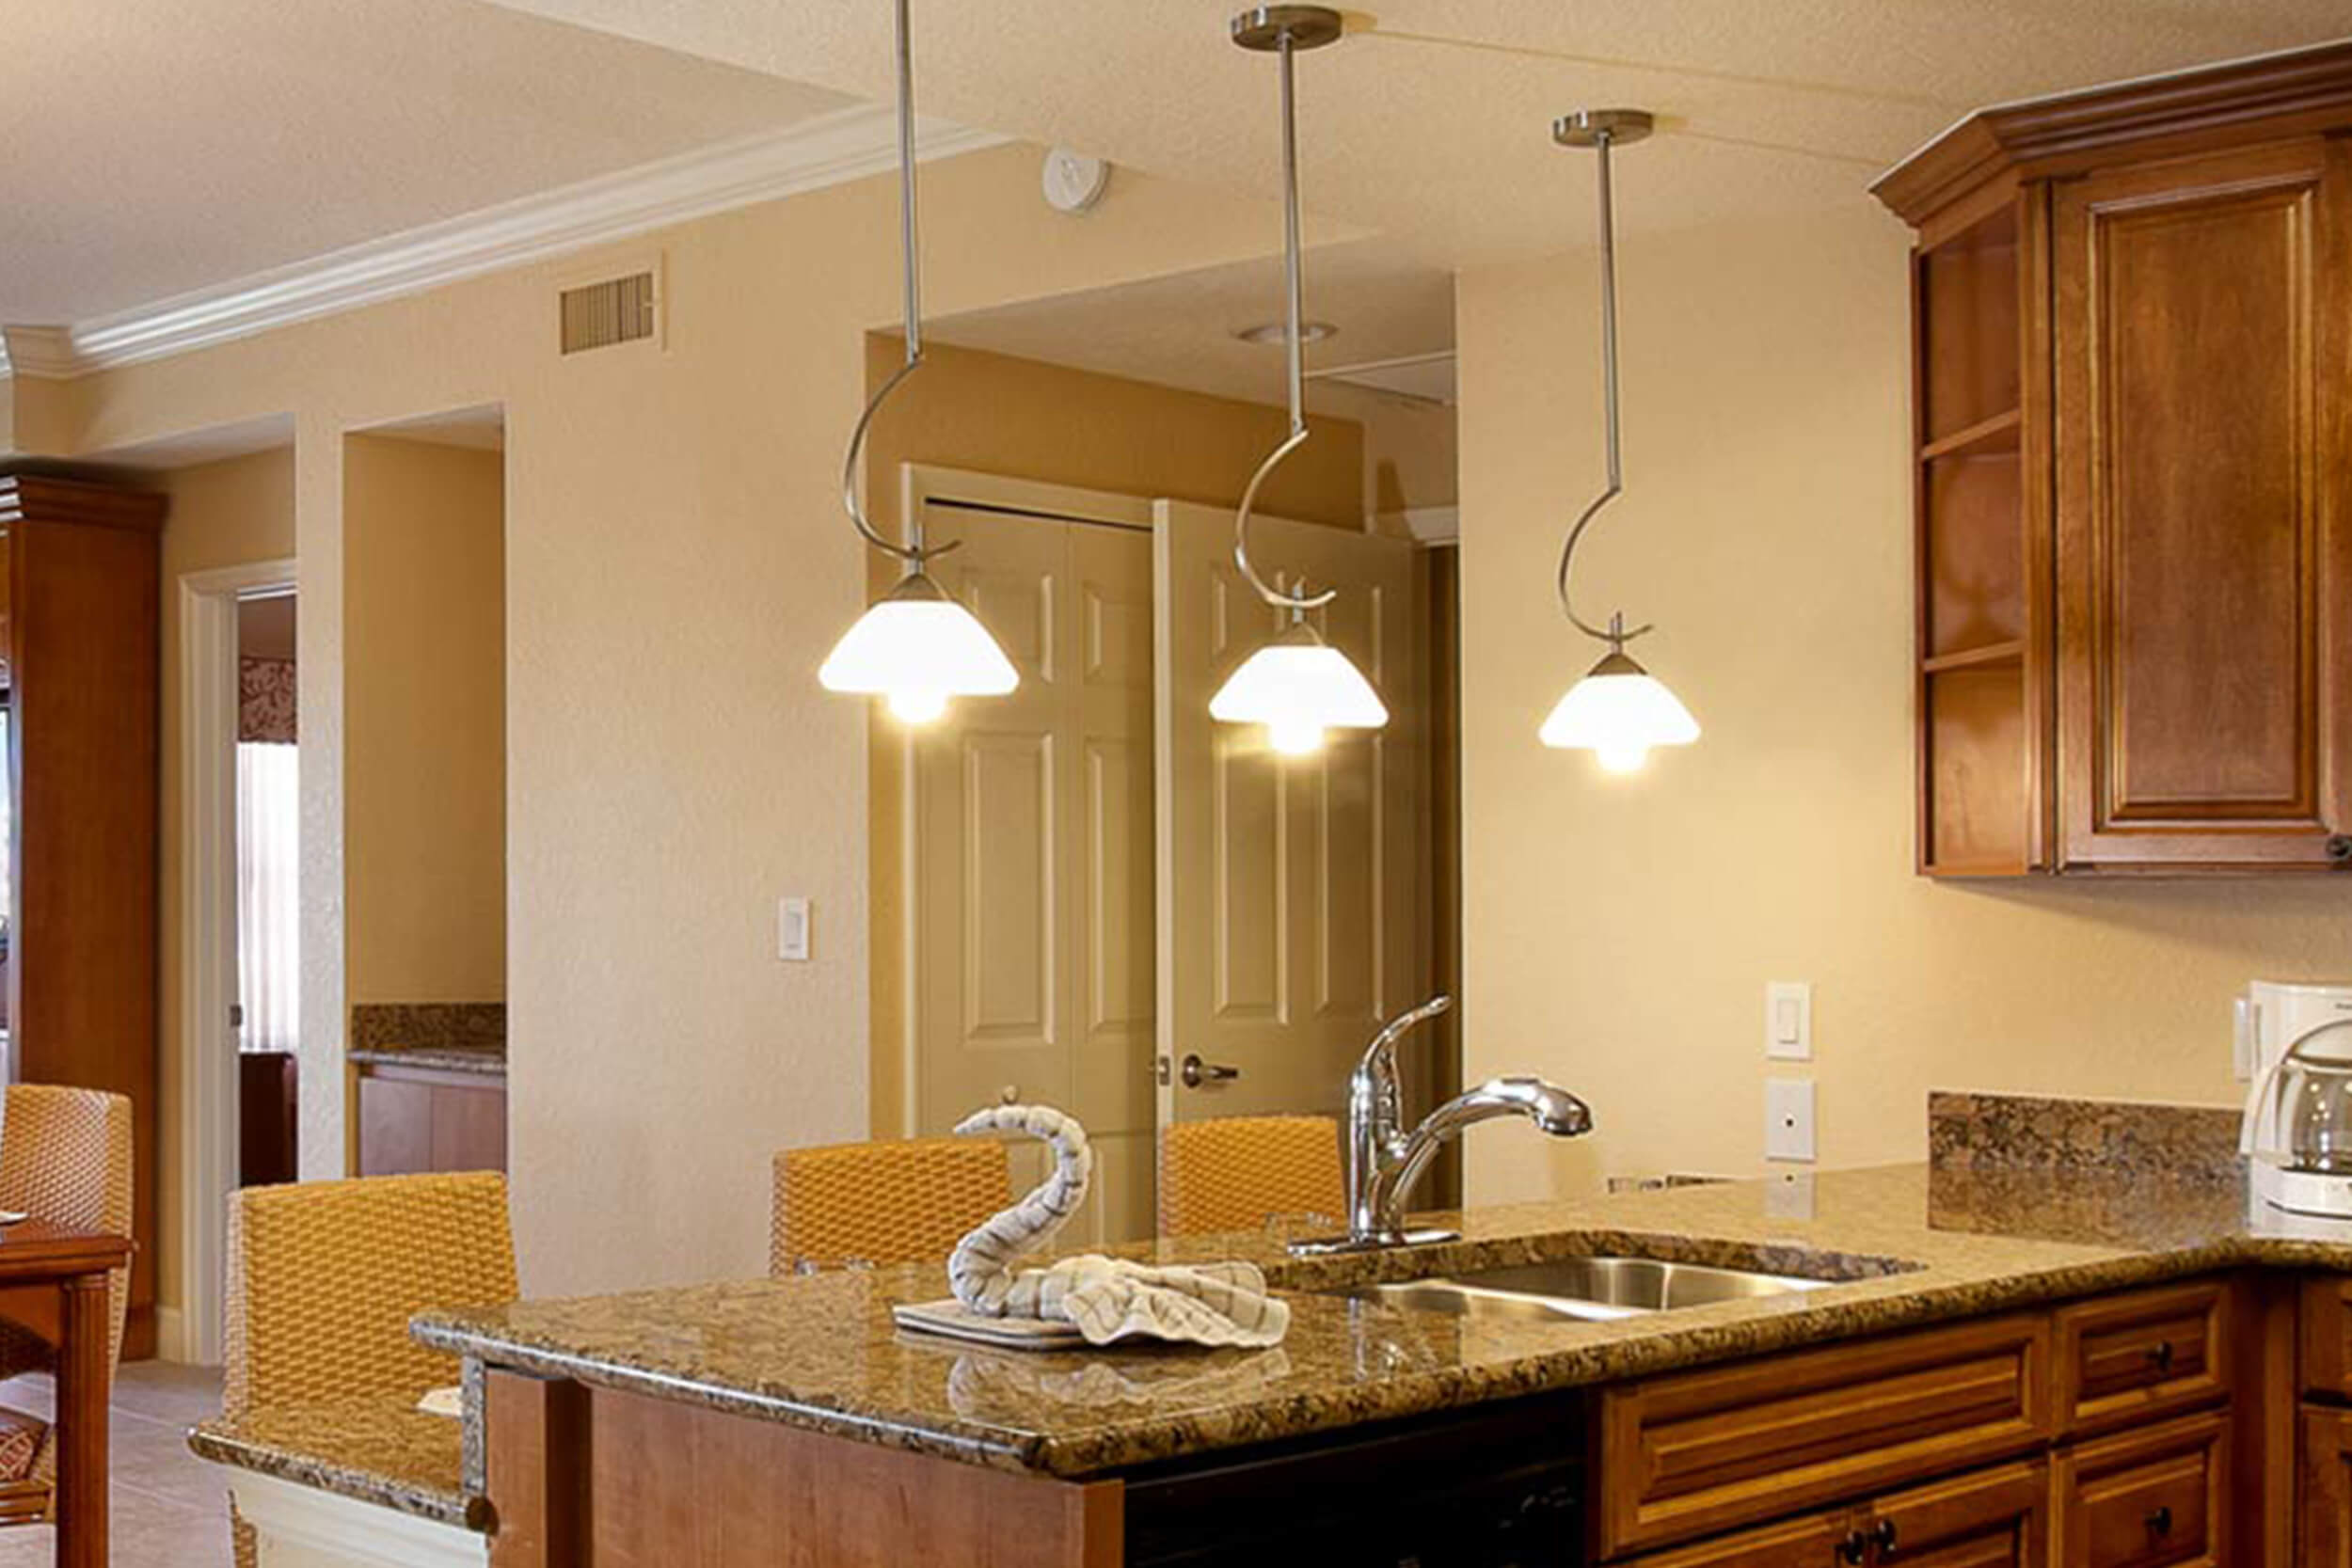 Full Kitchen in spacious villa | Westgate Town Center Resort & Spa